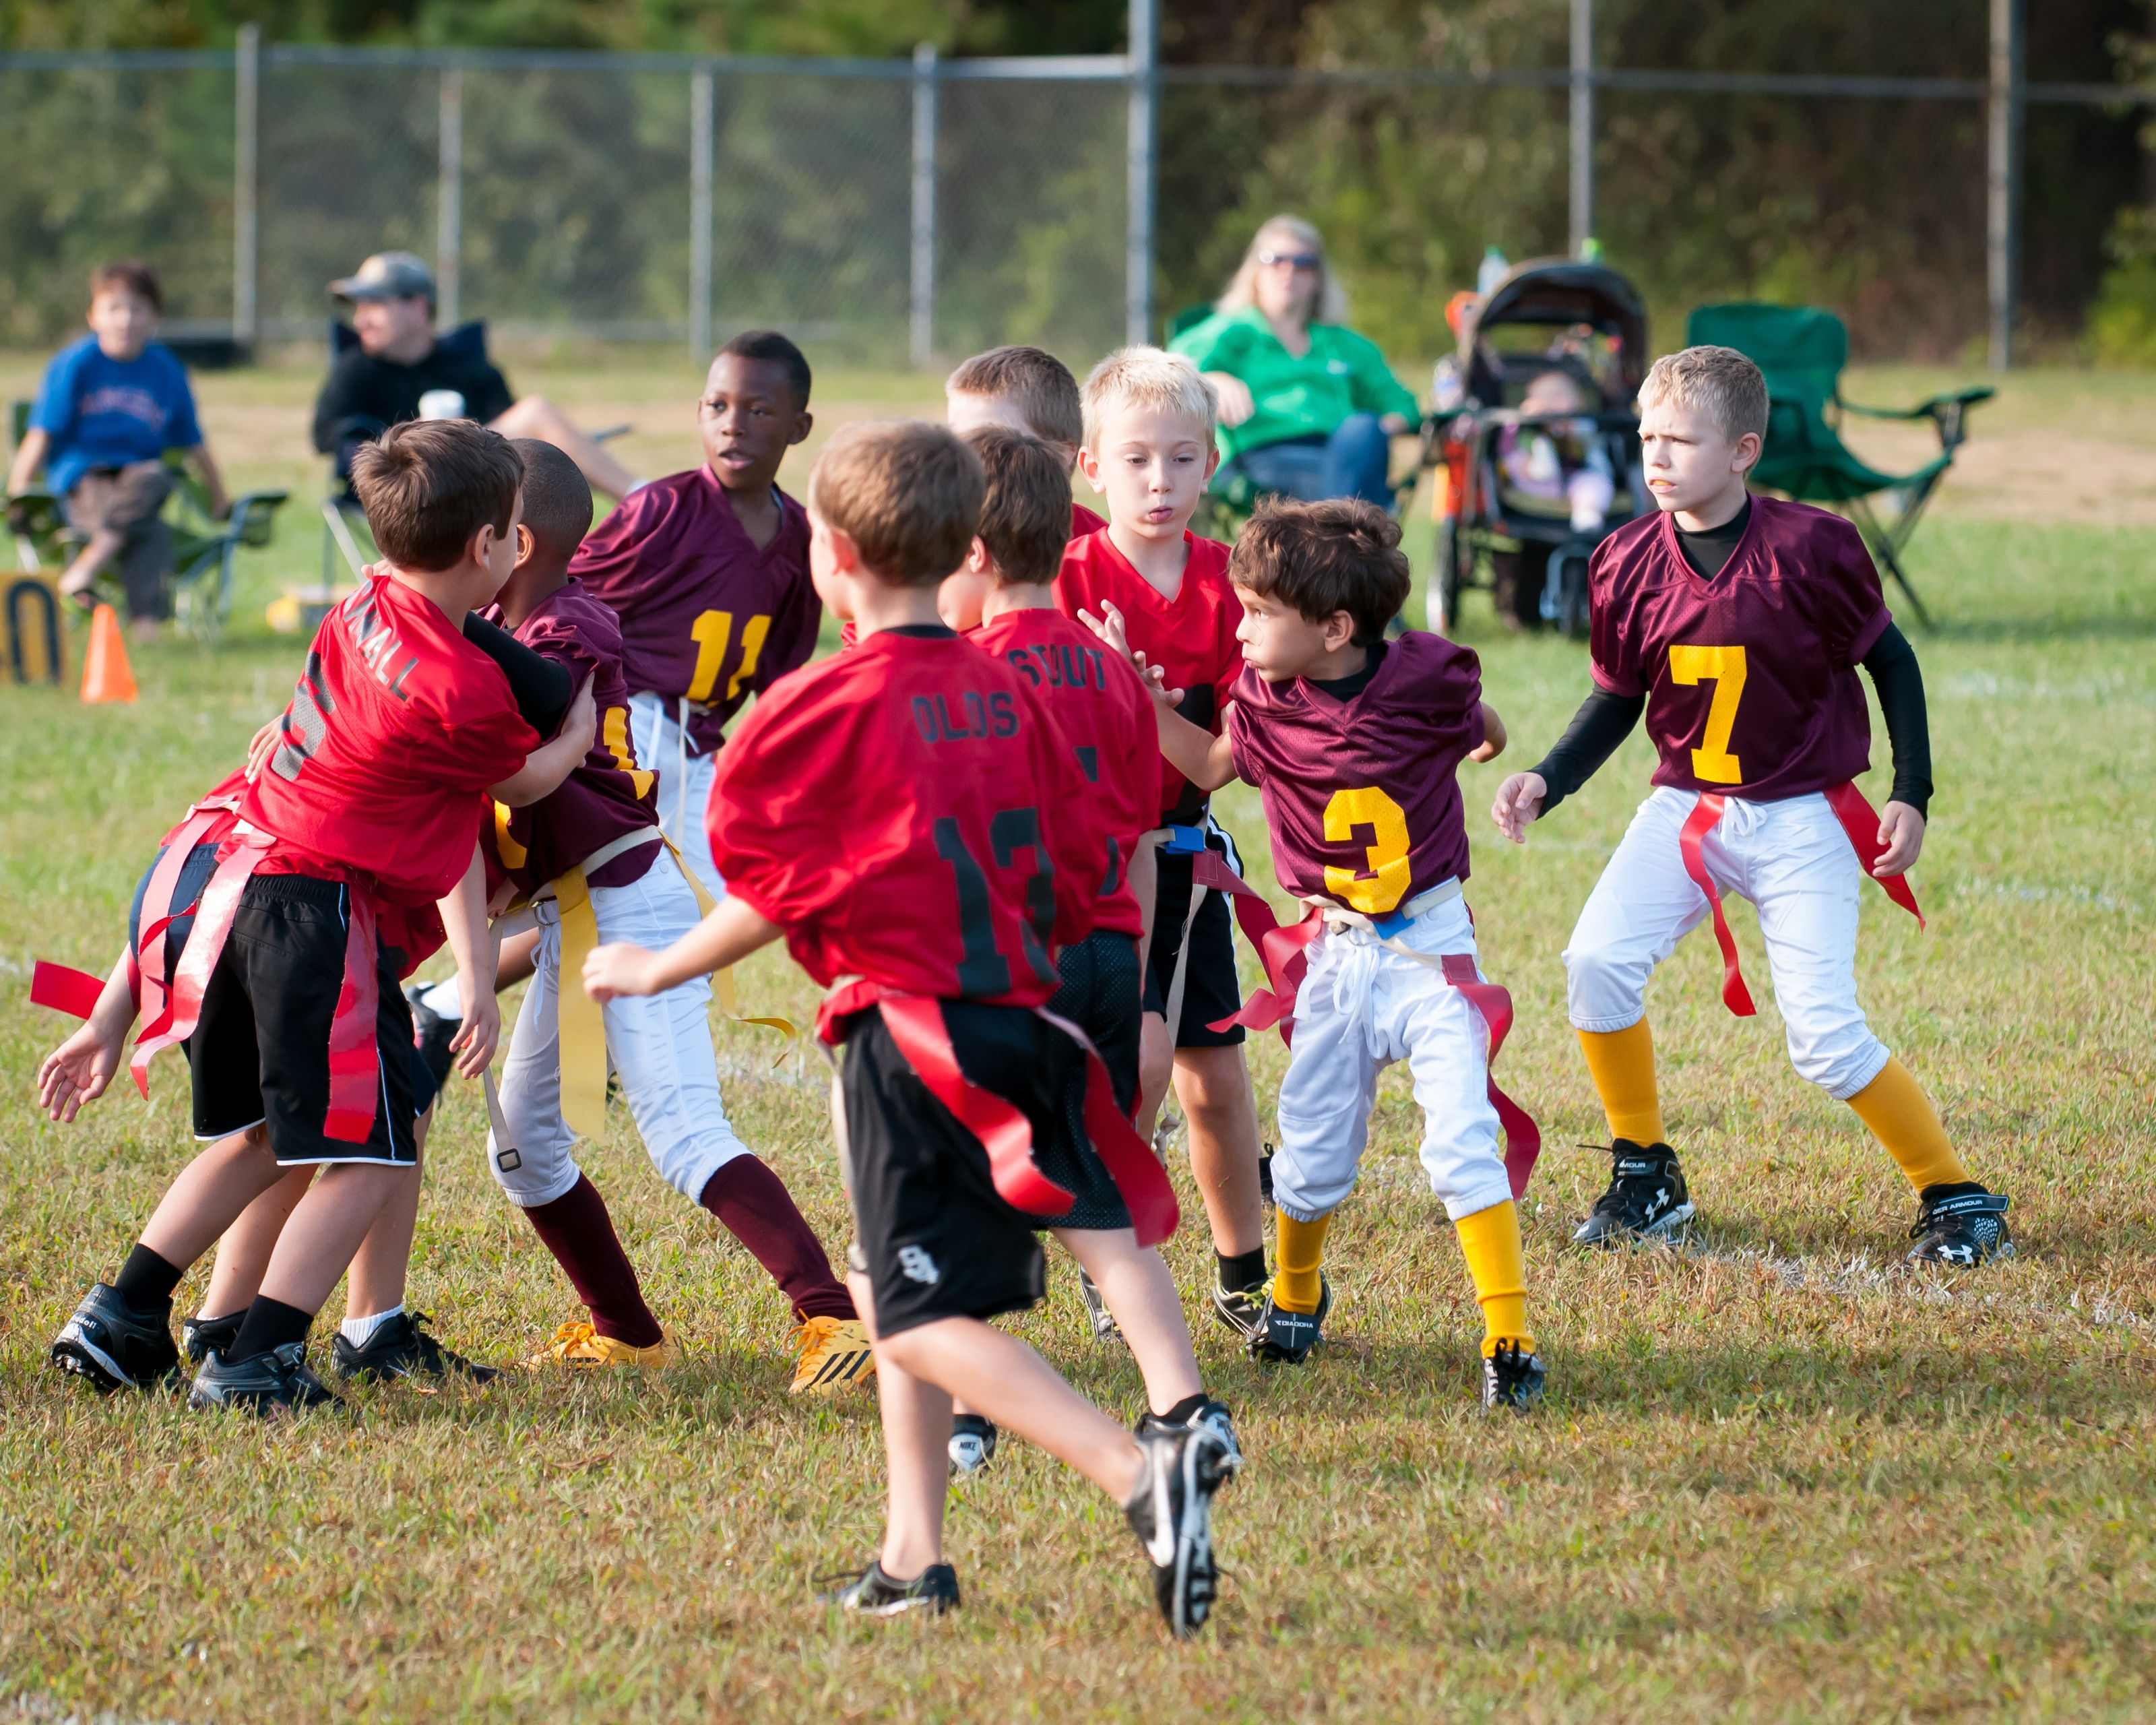 Improve School and Youth Sports Safety Using Name Labels in Australia